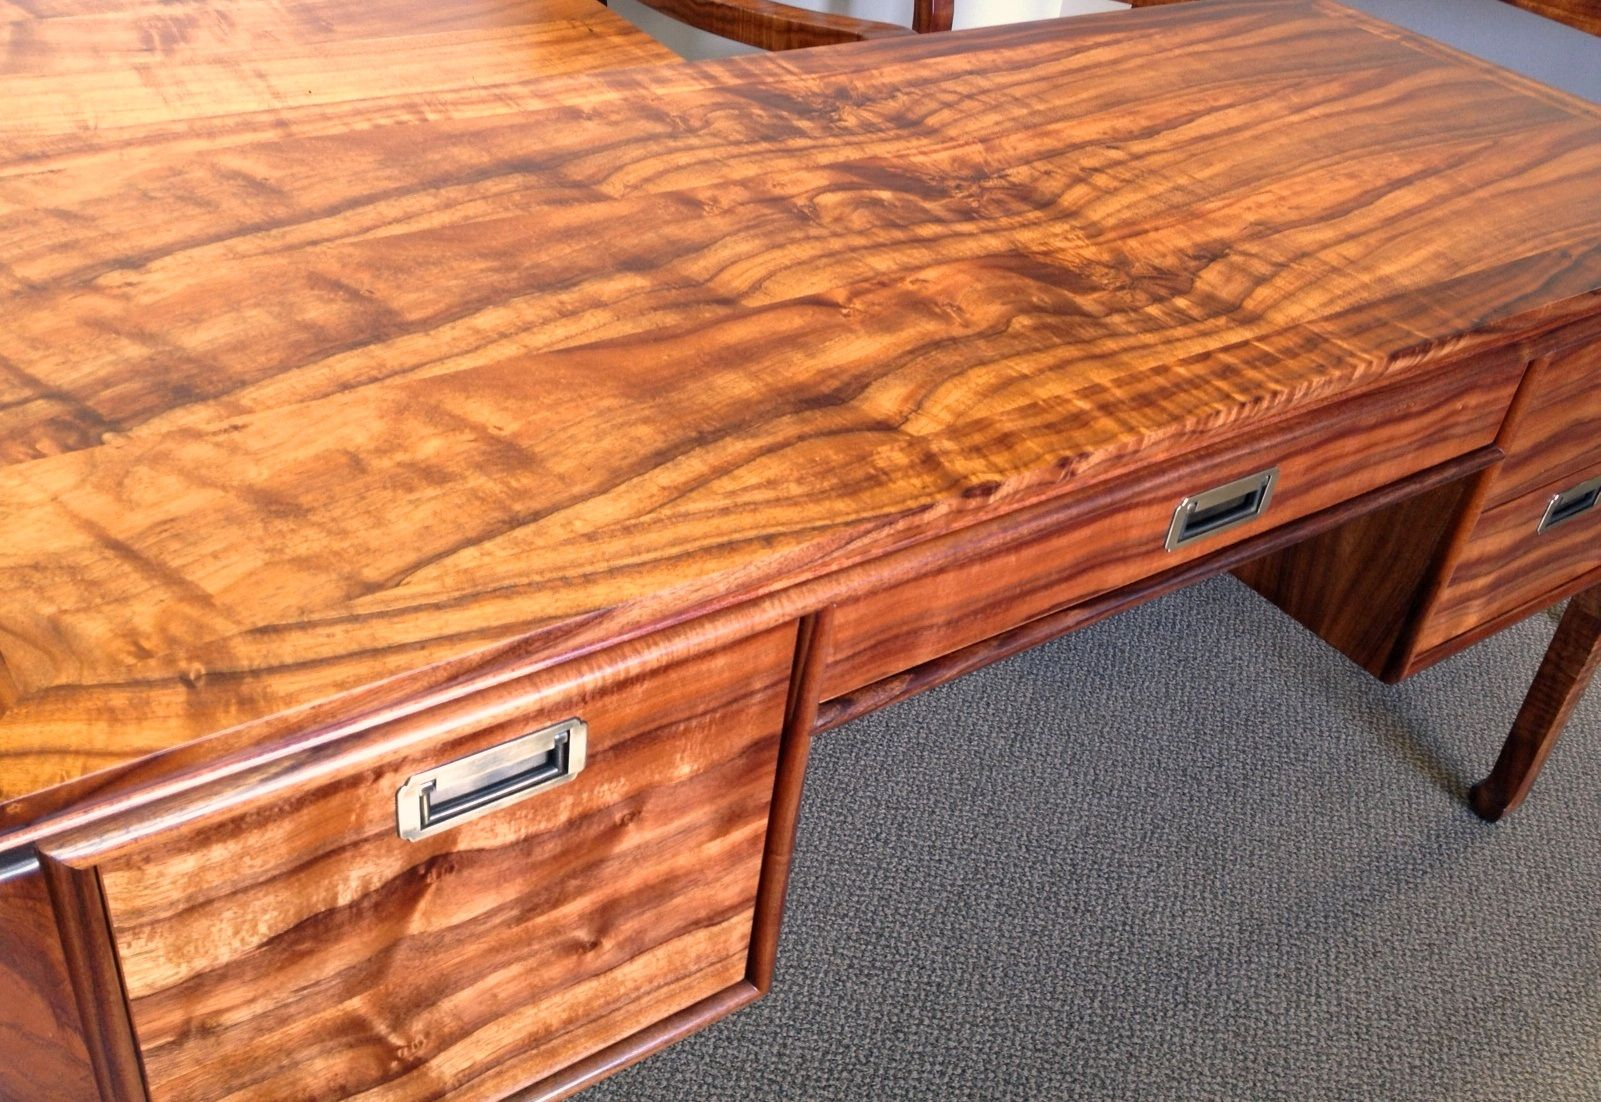 Admiralty Desk In Brilliant Curly Koa Designed And Made In Hawaii By The Fine Craftsmen Of Martin Woodworking Desk Plans Woodworking Apron Mcguire Furniture [ 1102 x 1601 Pixel ]